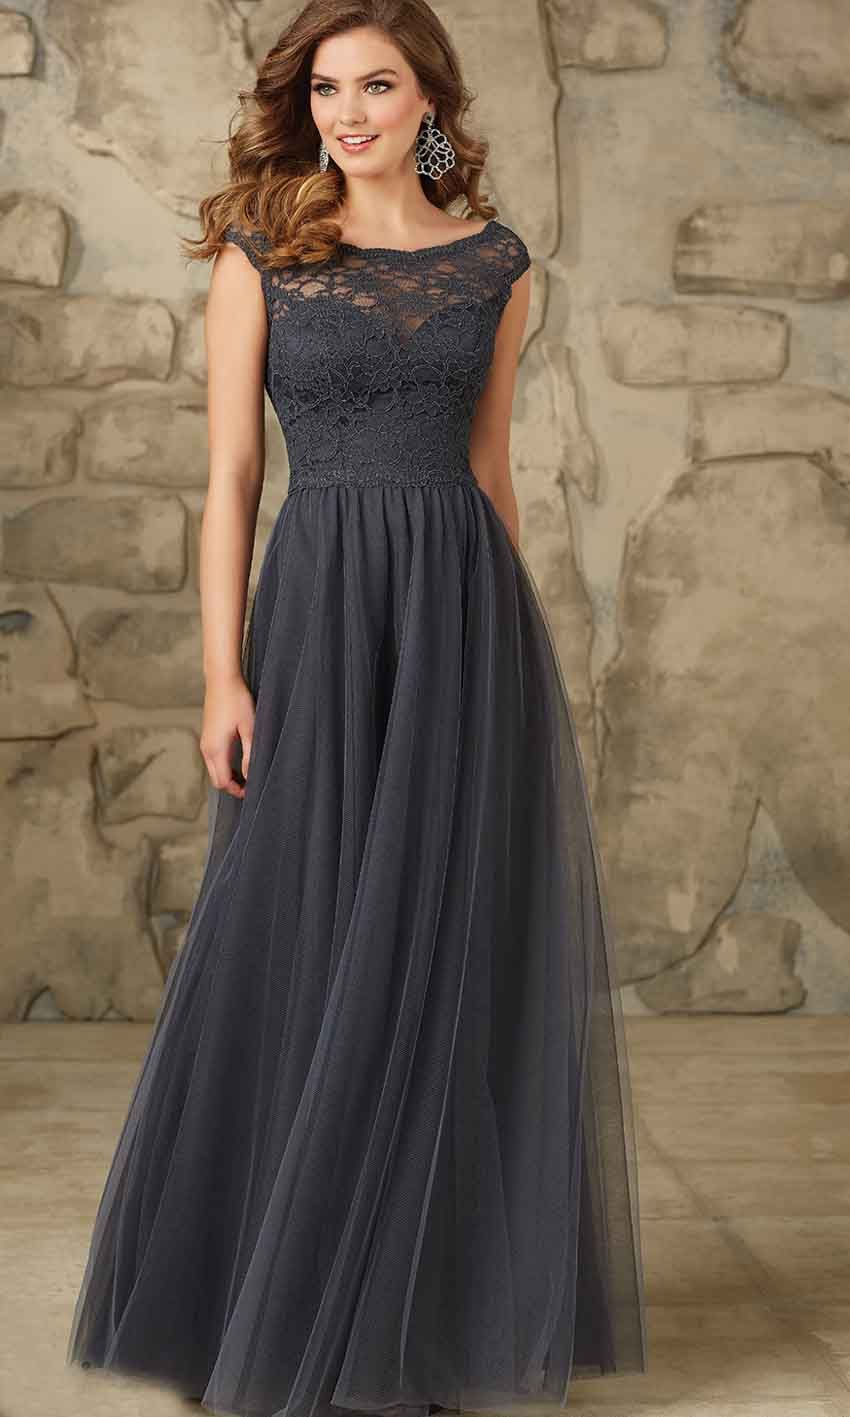 Dark gray long lace bridesmaid dresses uk ksp wedding ideas